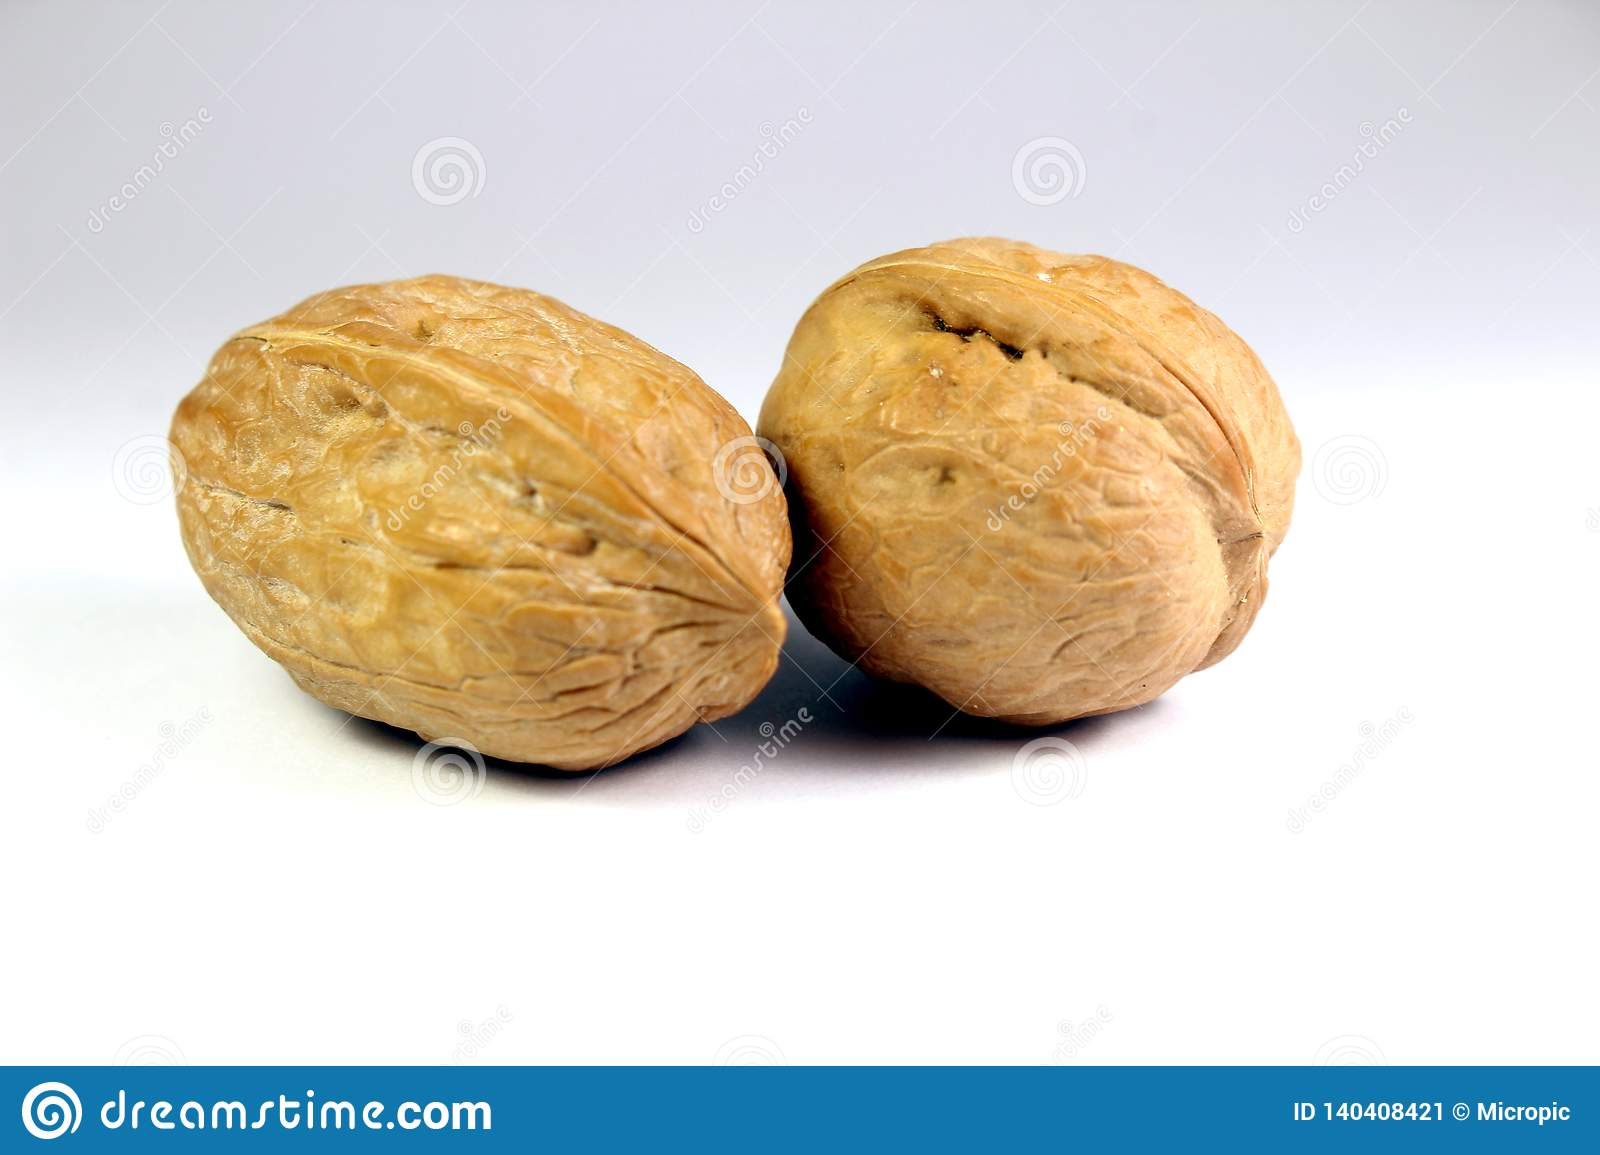 Nuts Walnut Isolated On White Background Stock Image - Image